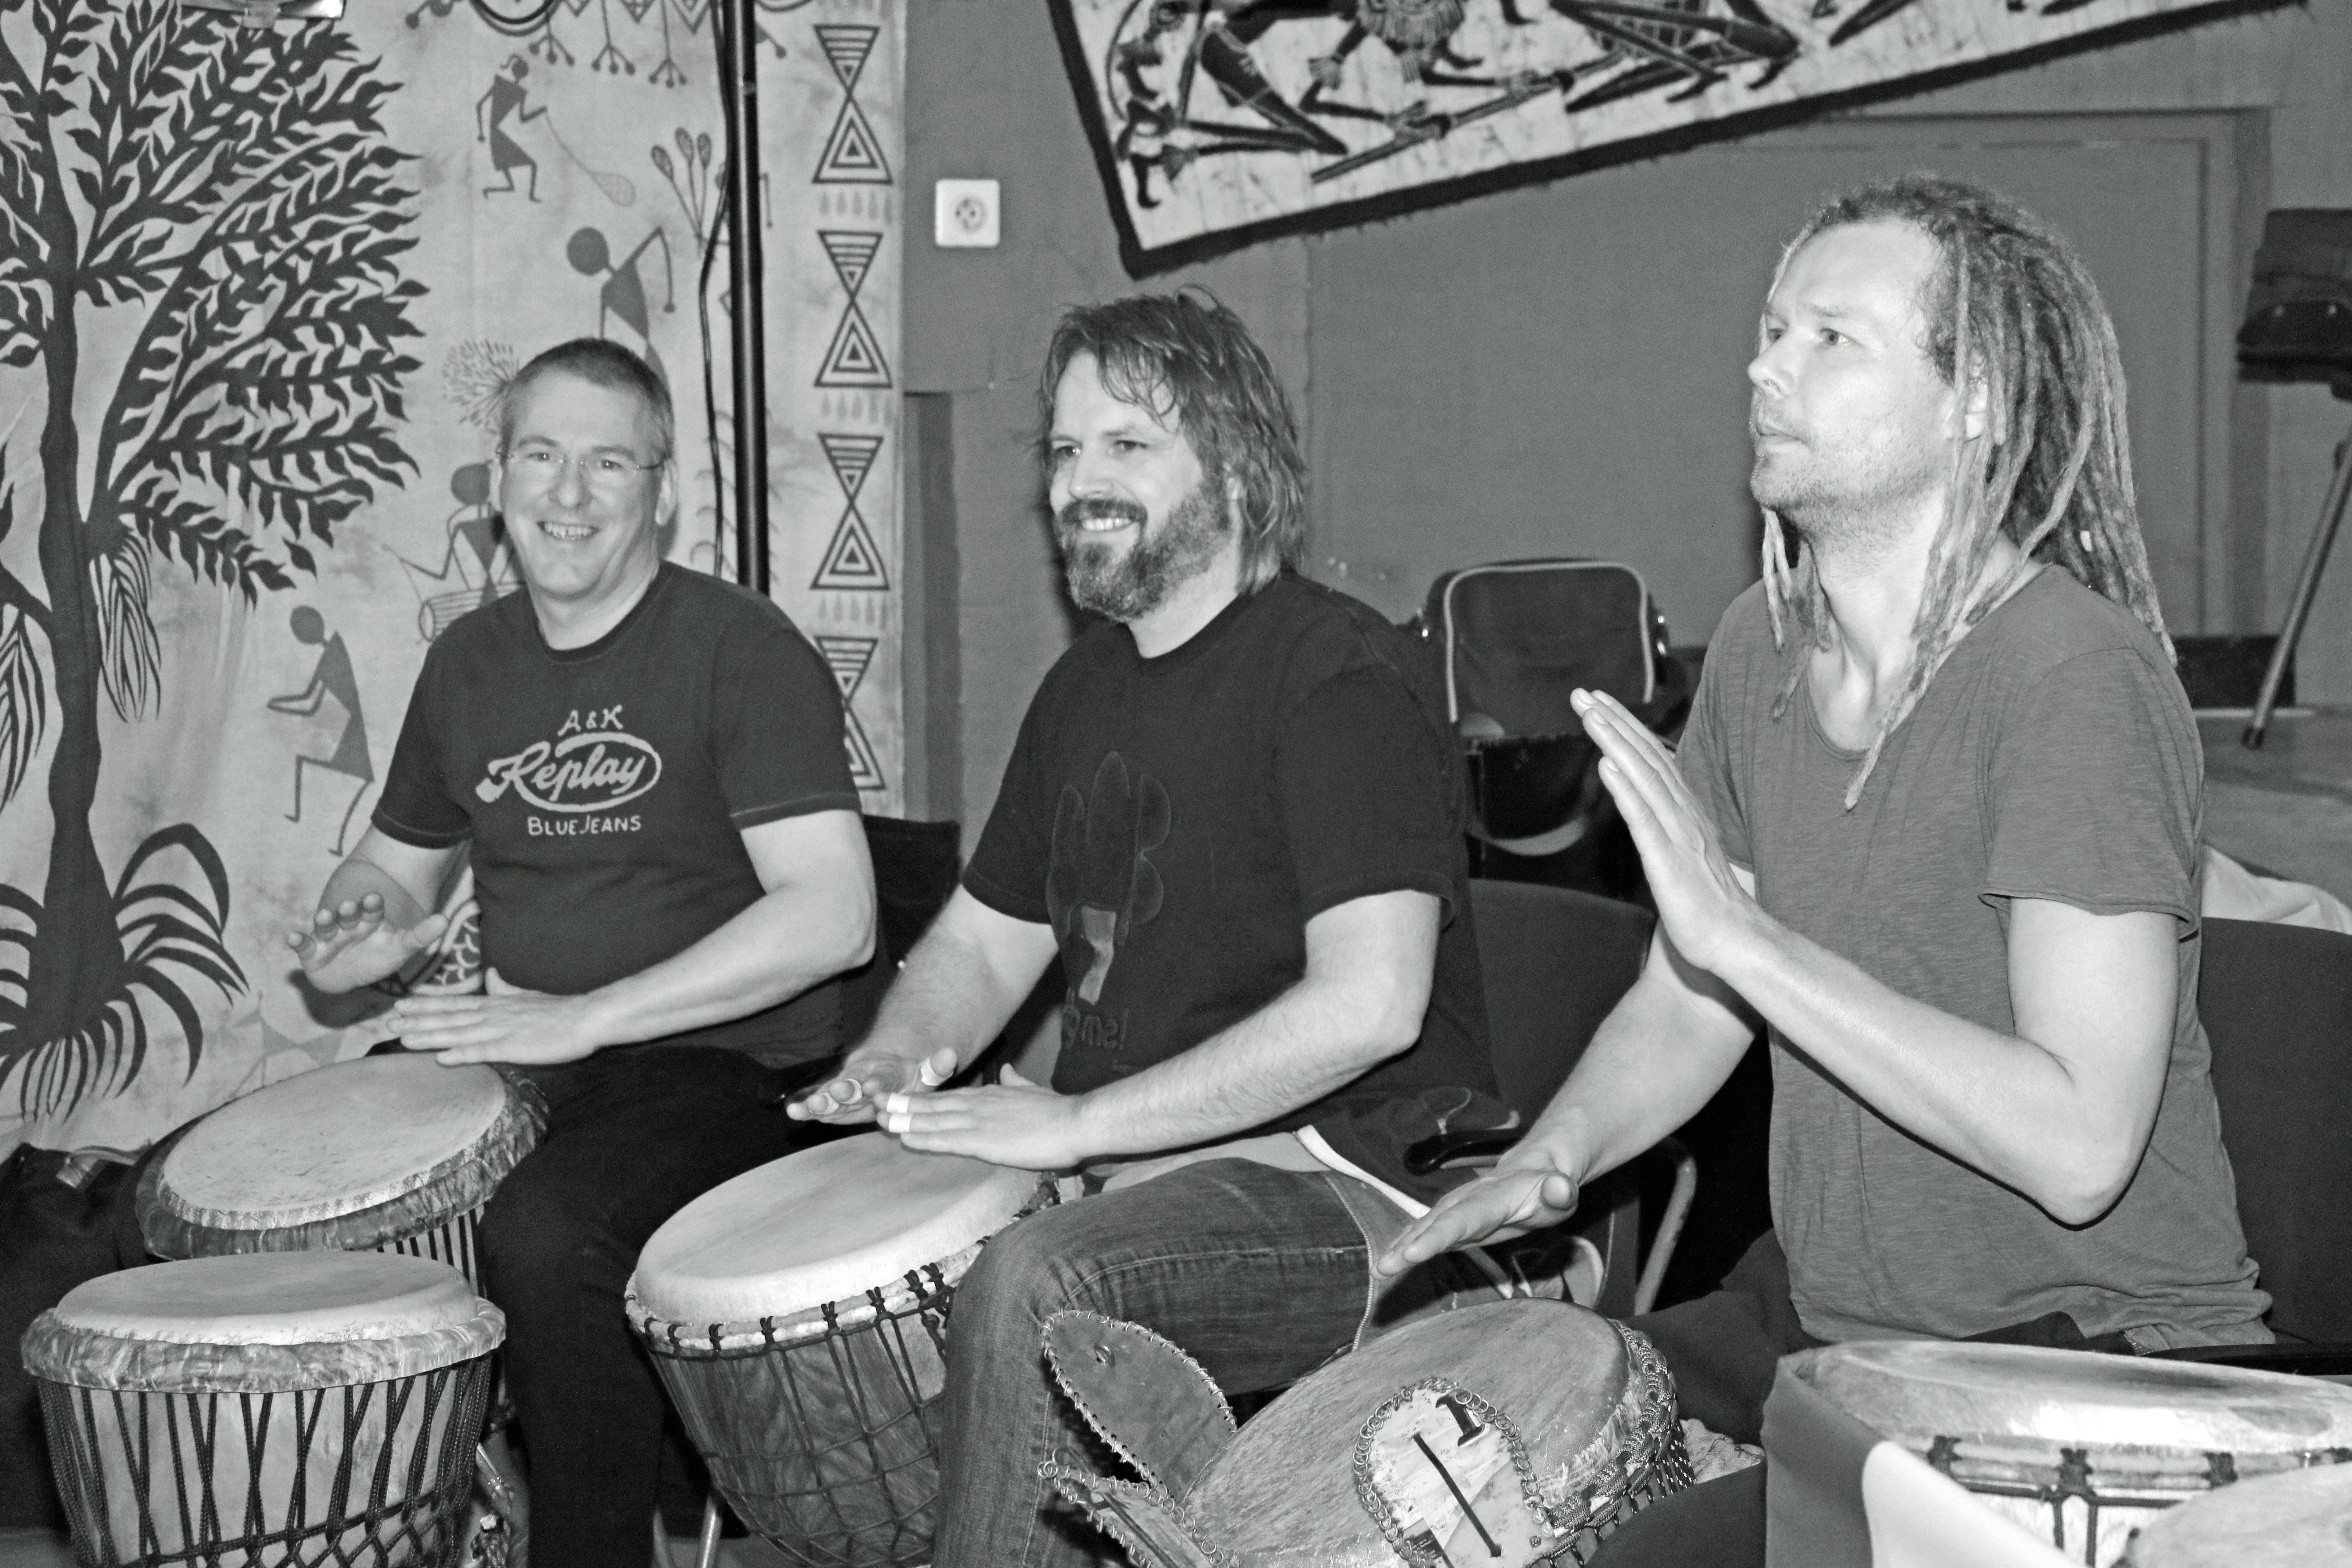 Daniel Verbaan with Michiel Moerkerk and Jeroen Huguenin at Tuka Tuka